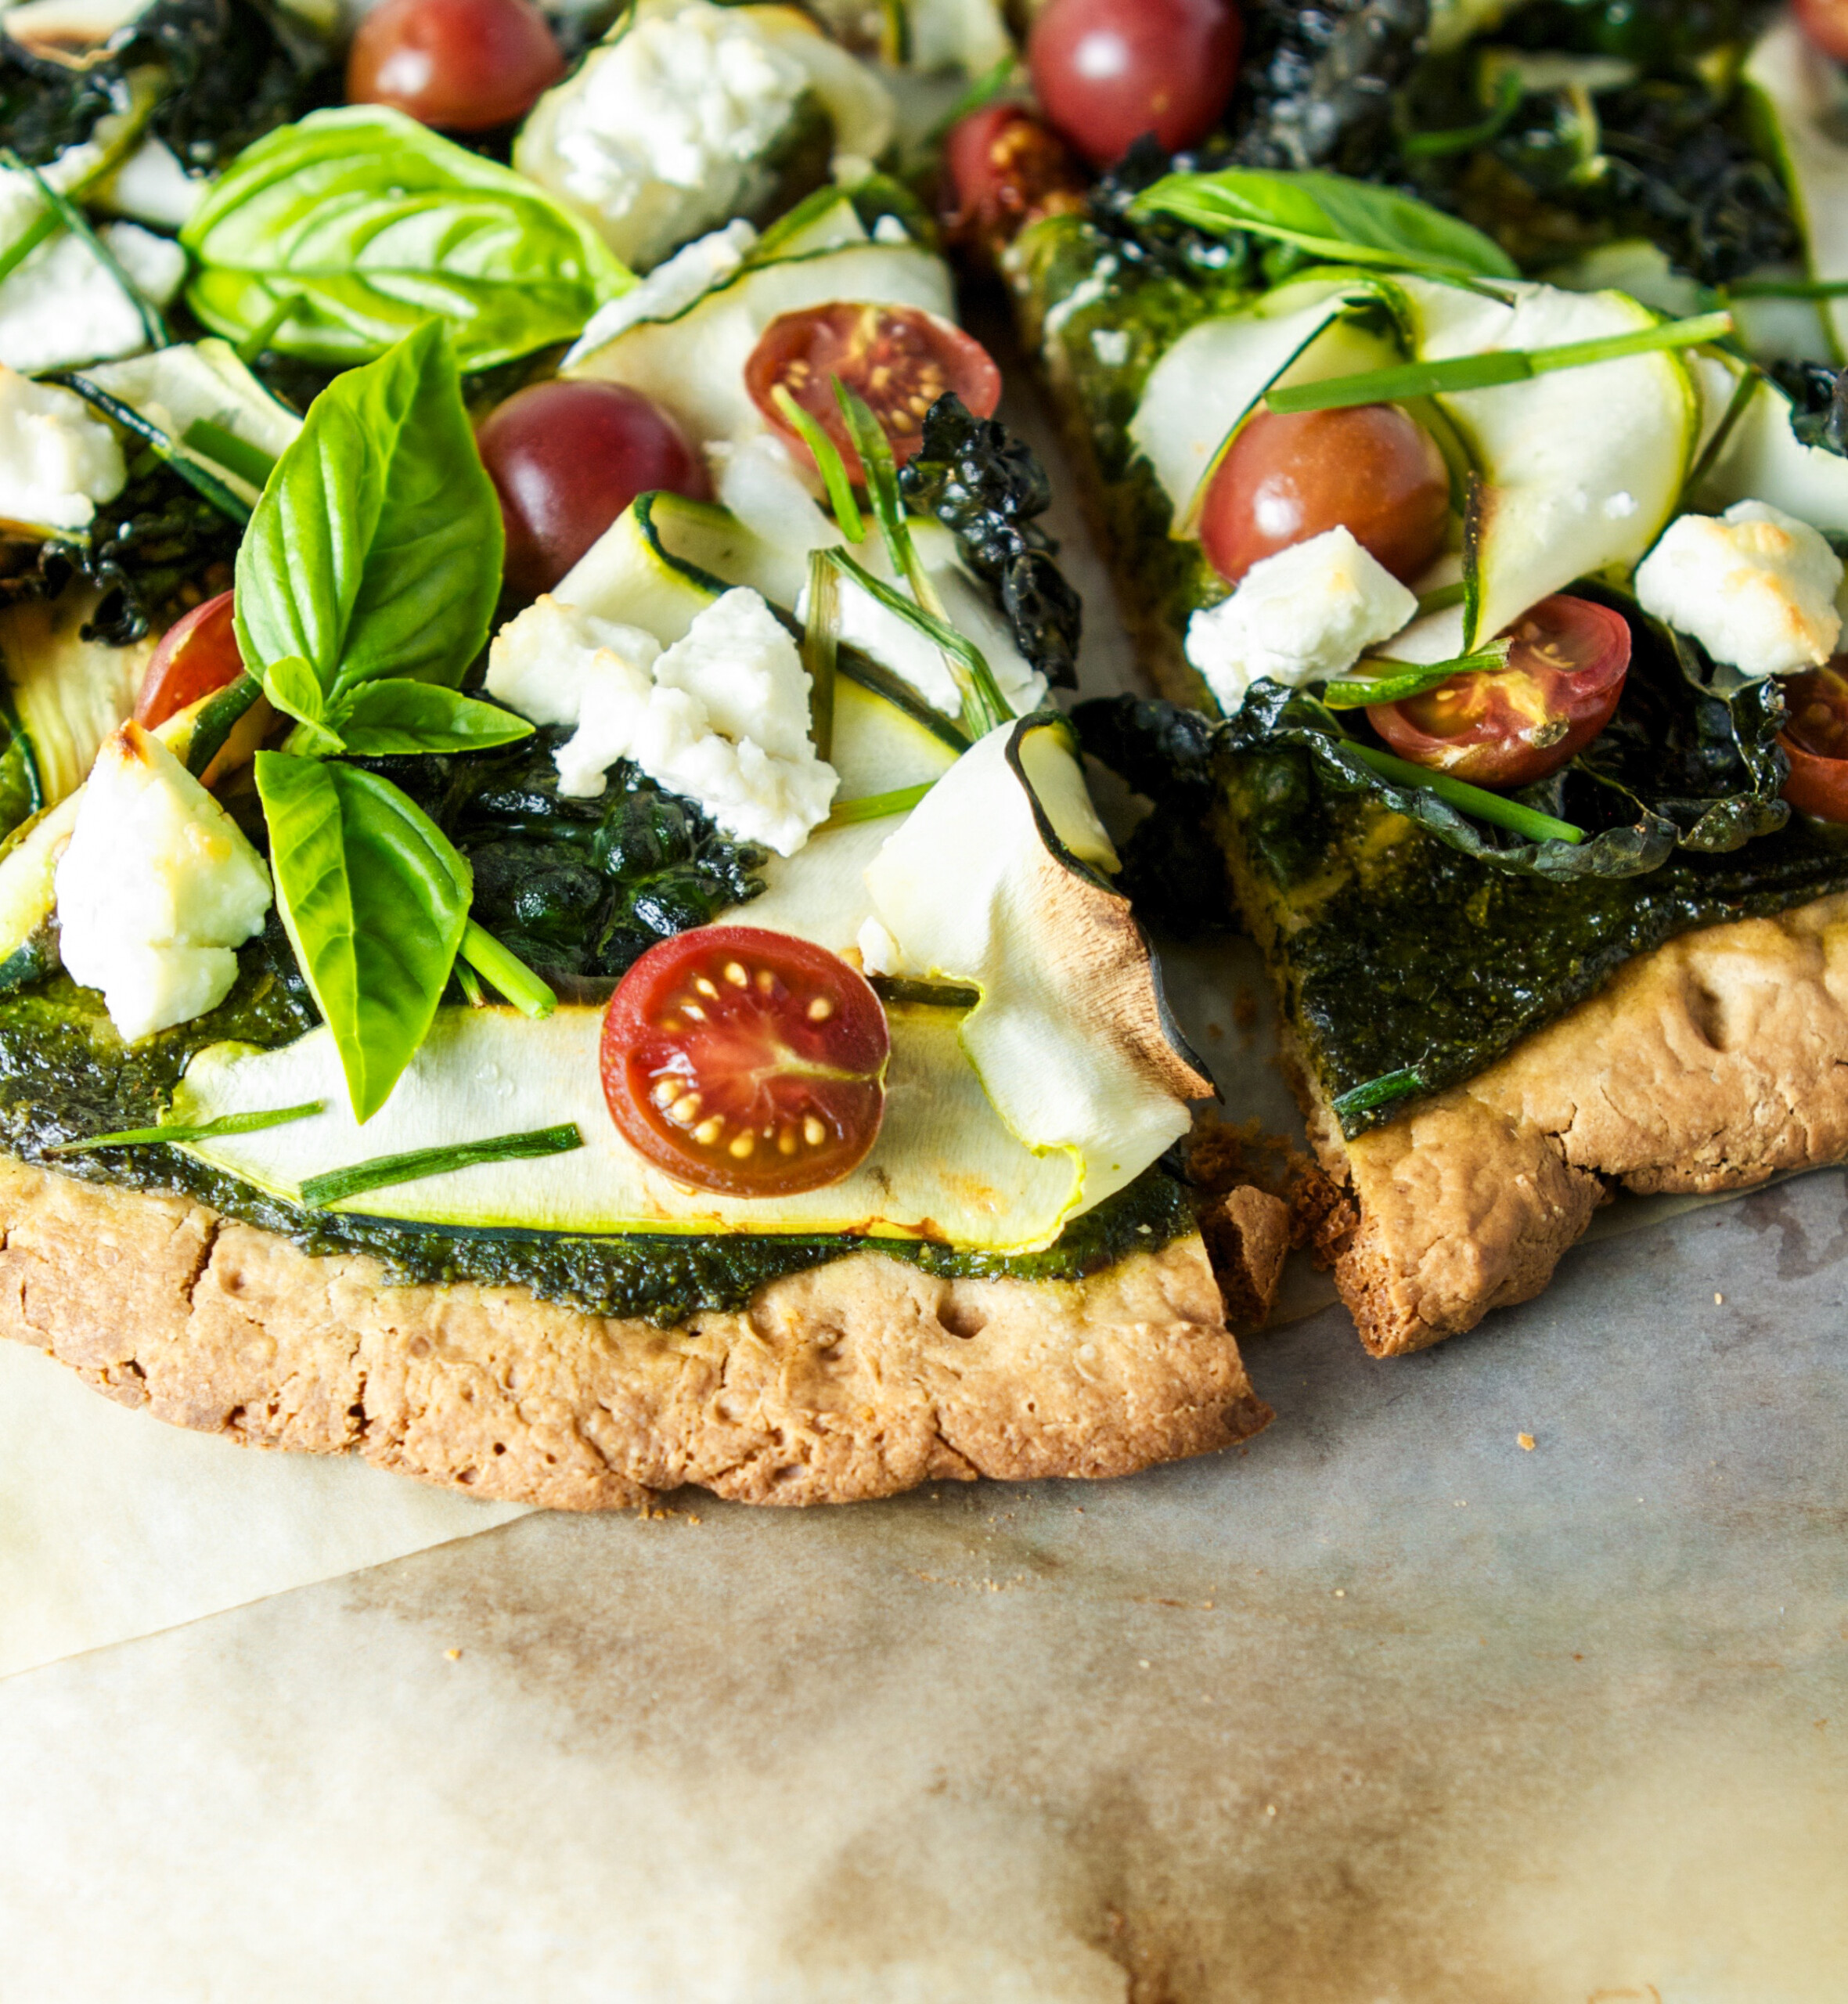 Photograph of pizza topped with pesto, cheese, tomatoes and basil, set on white paper